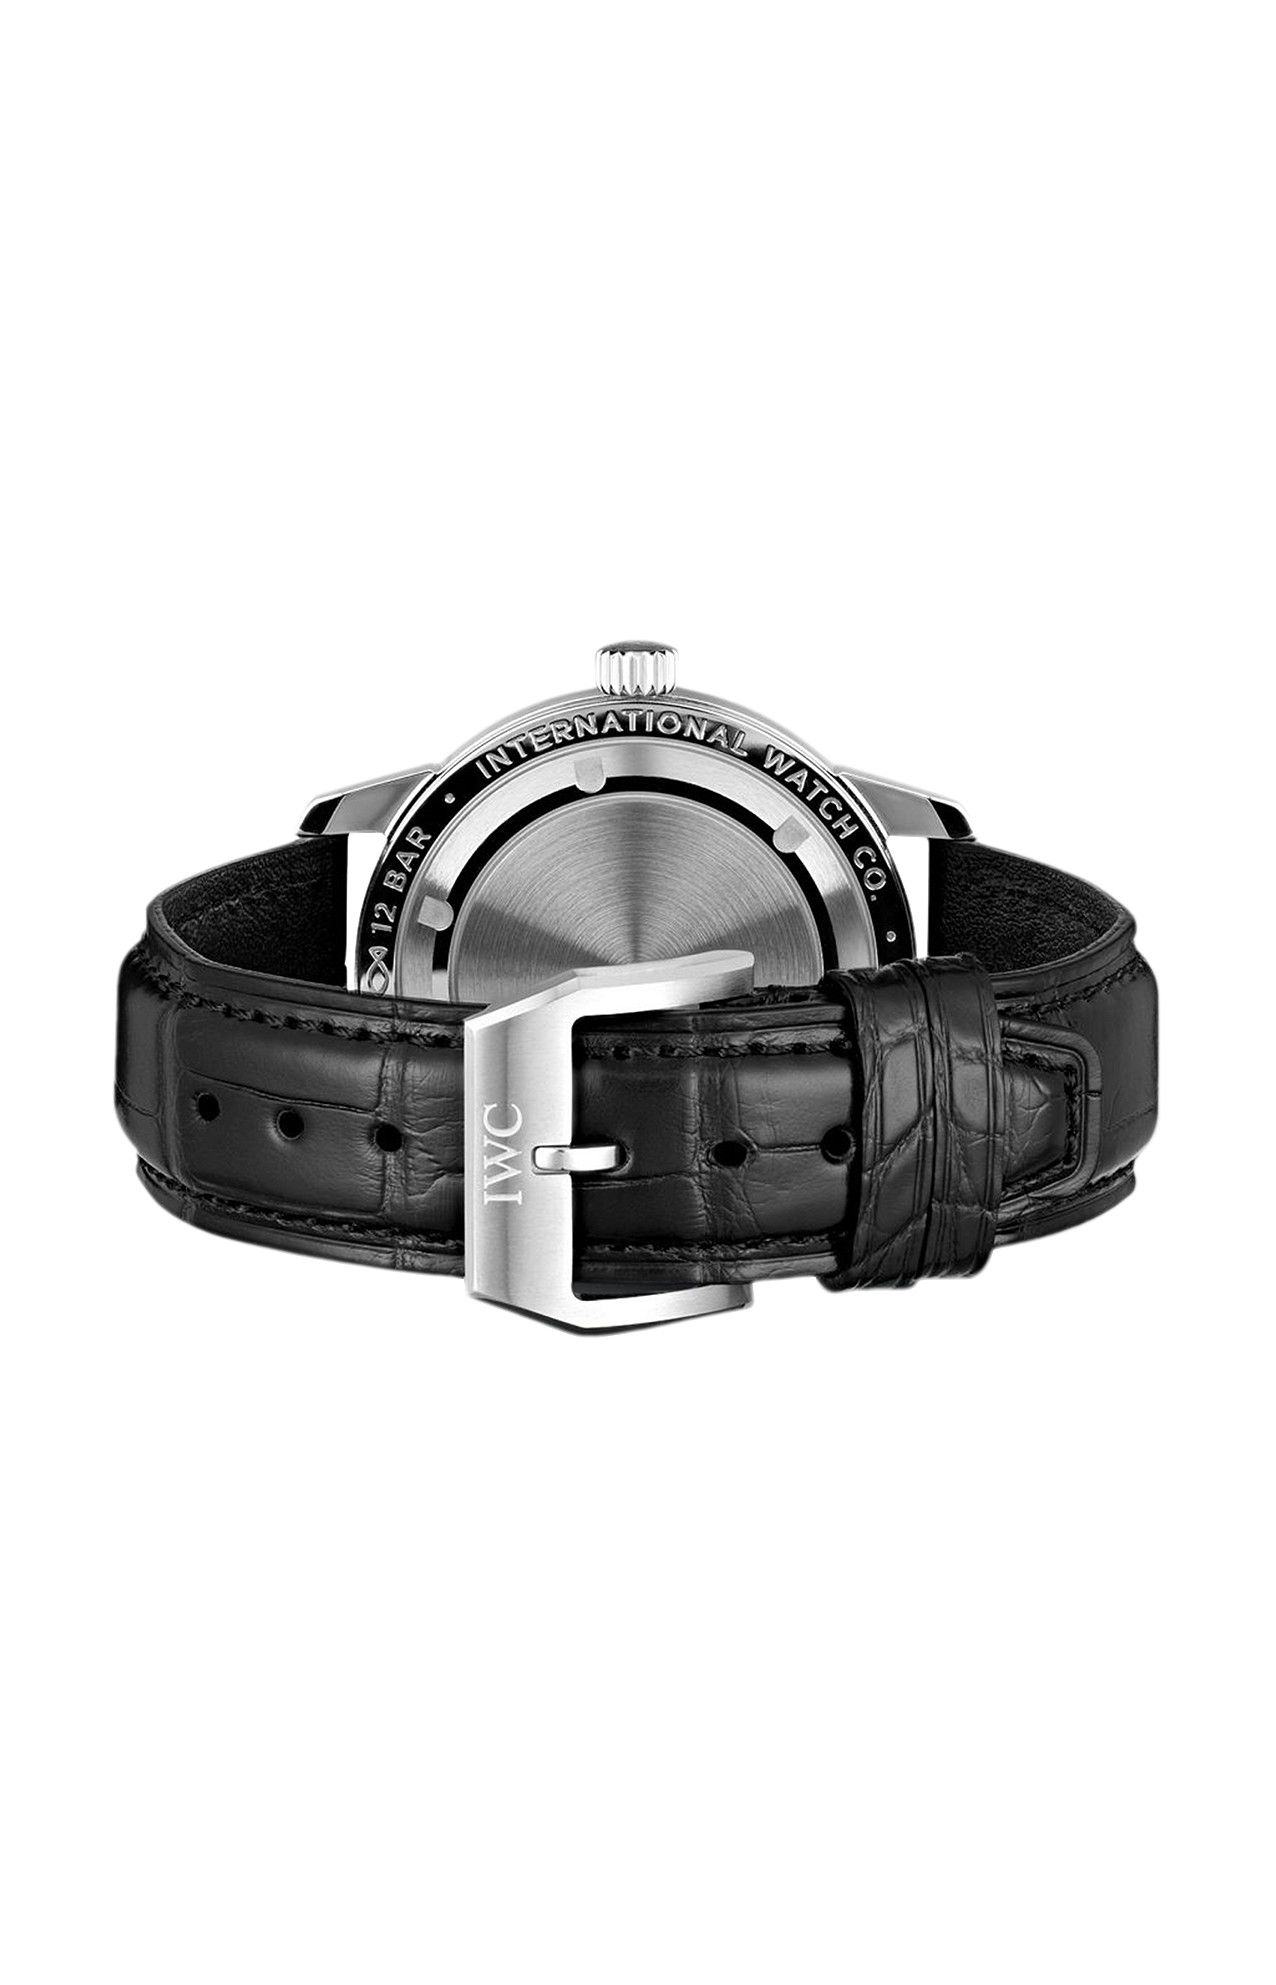 INGENIEUR AUTOMATIC - IW357001